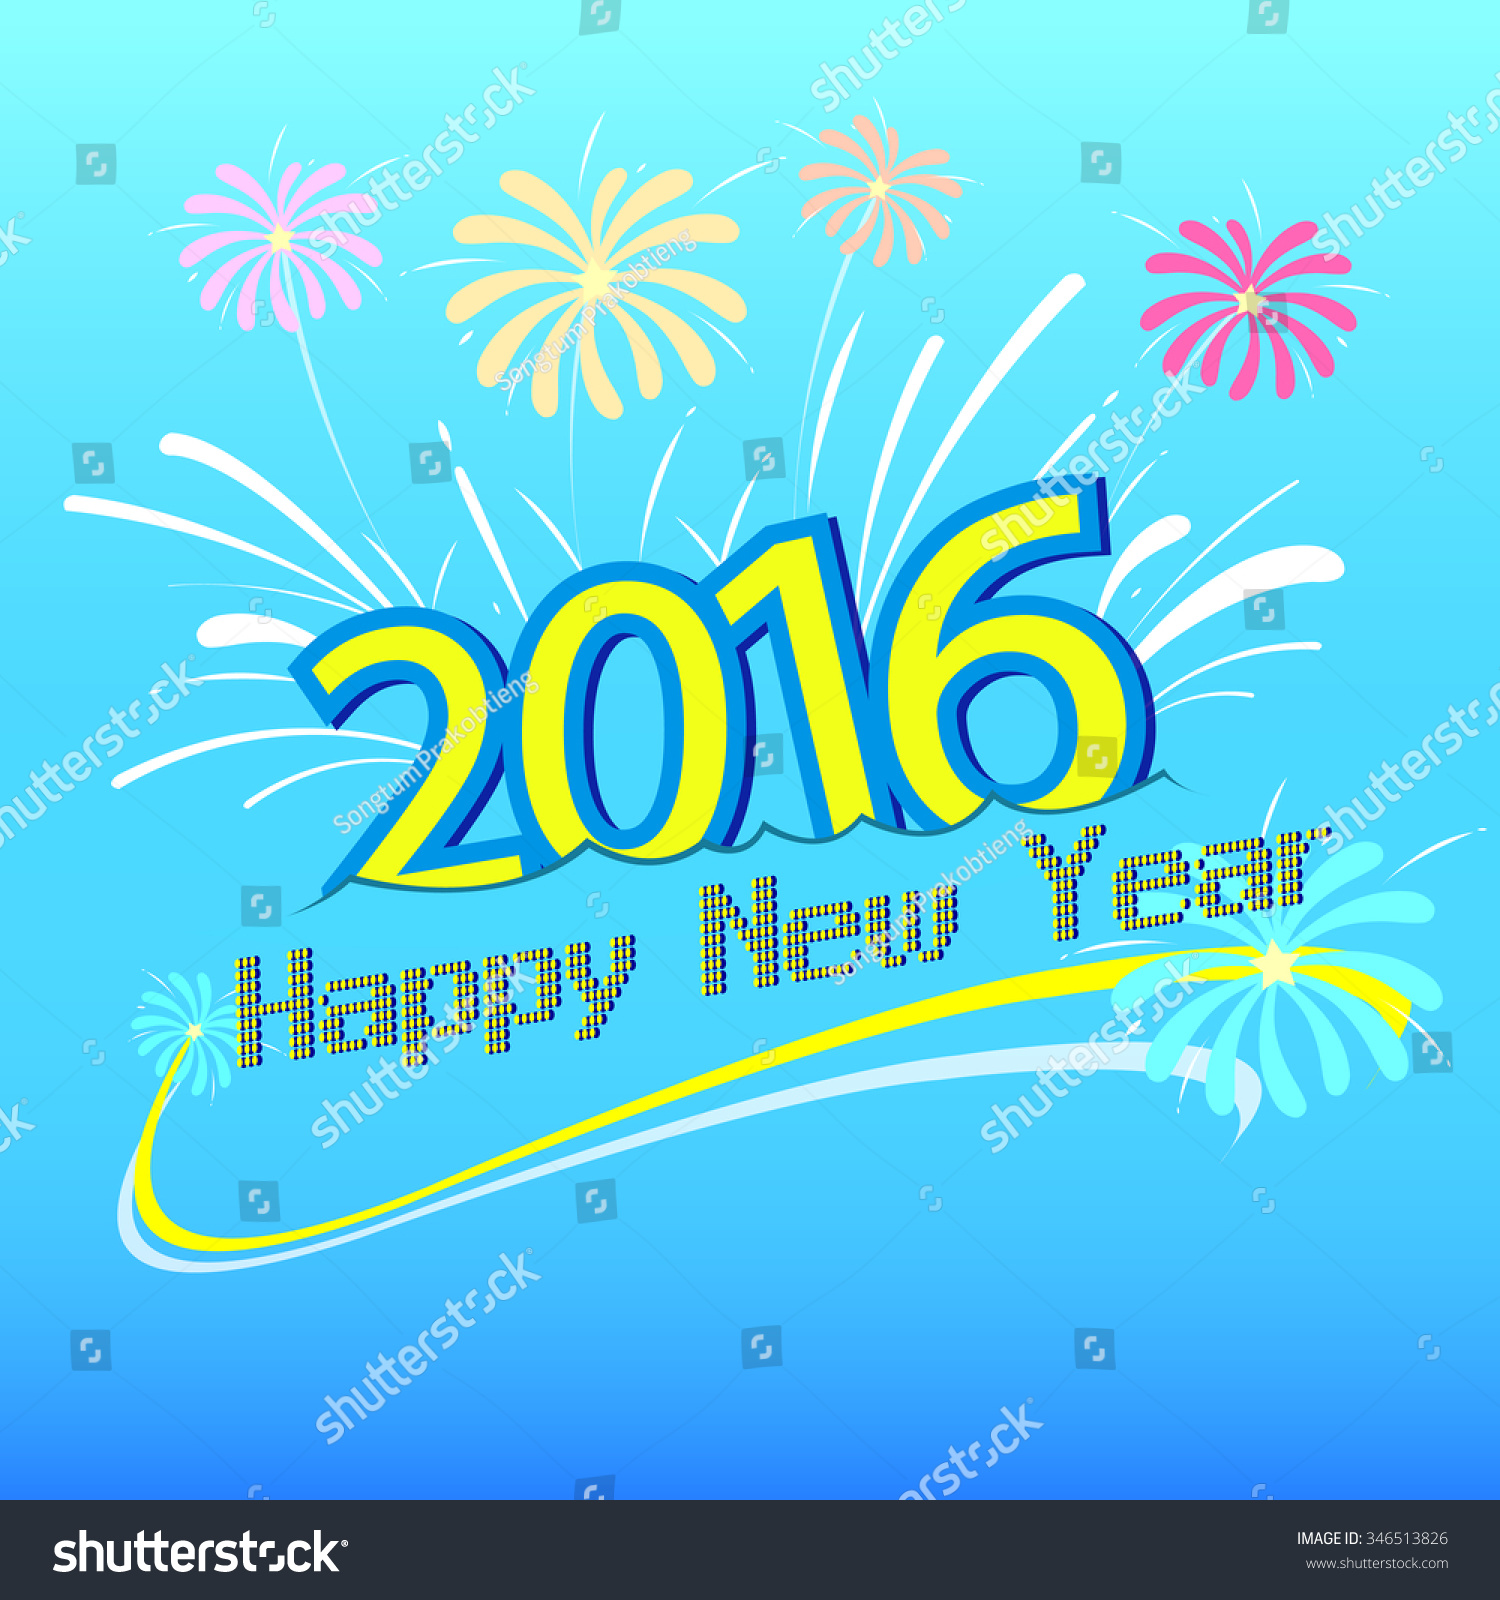 happy new year 2016 design vector stock vector 346513826 shutterstock. Black Bedroom Furniture Sets. Home Design Ideas